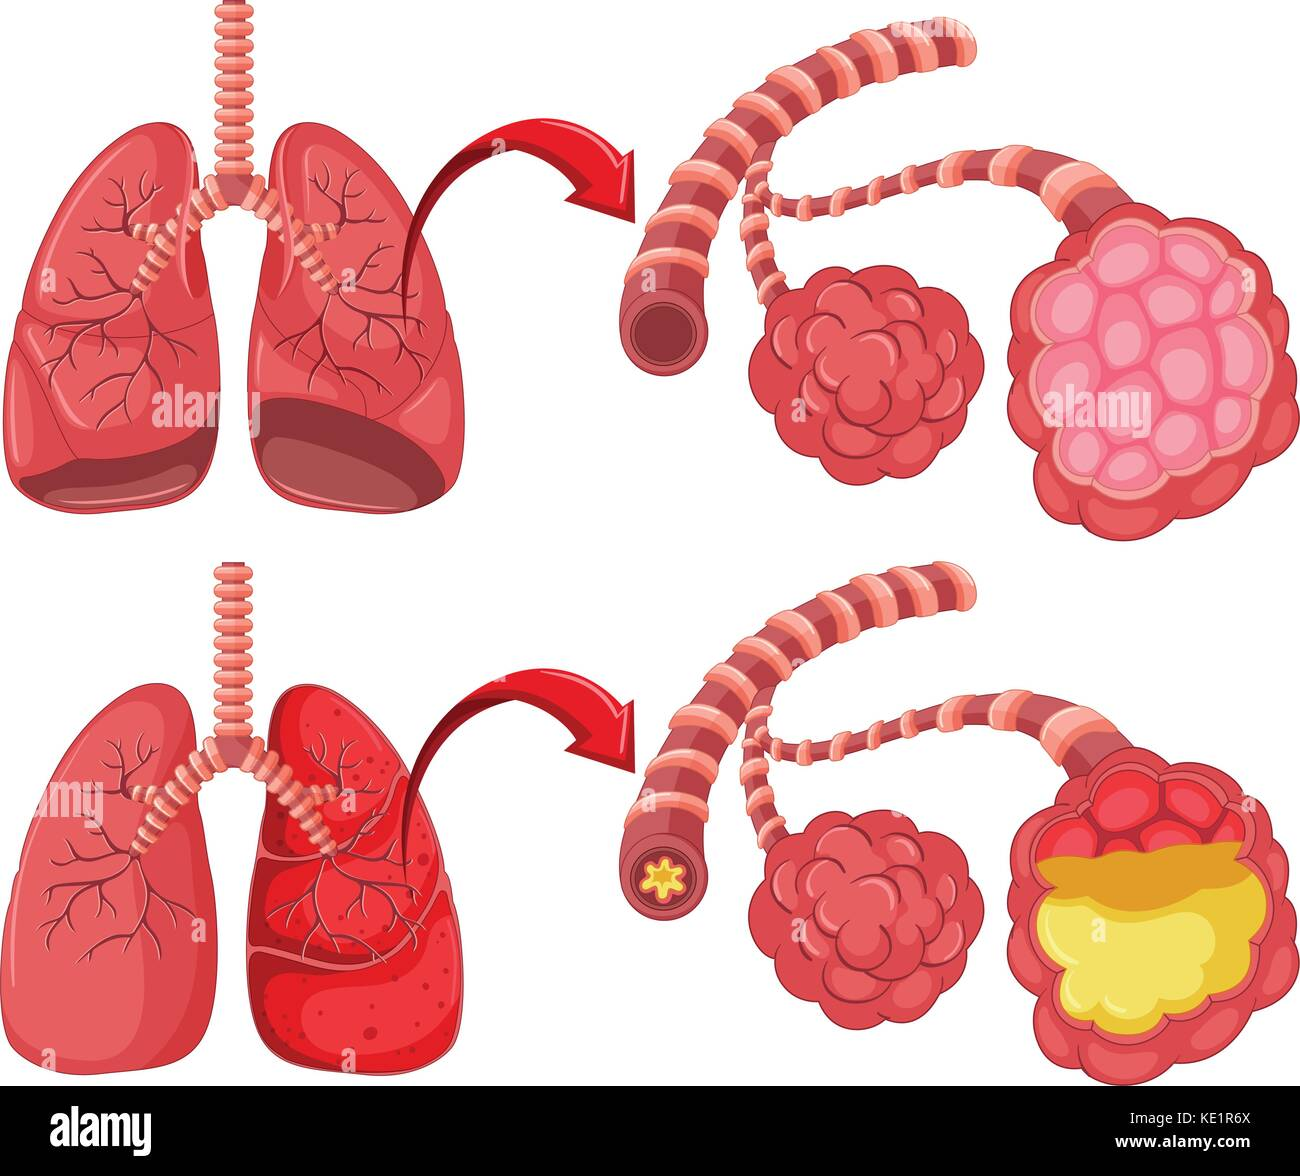 Human lungs with pneumonia illustration - Stock Vector